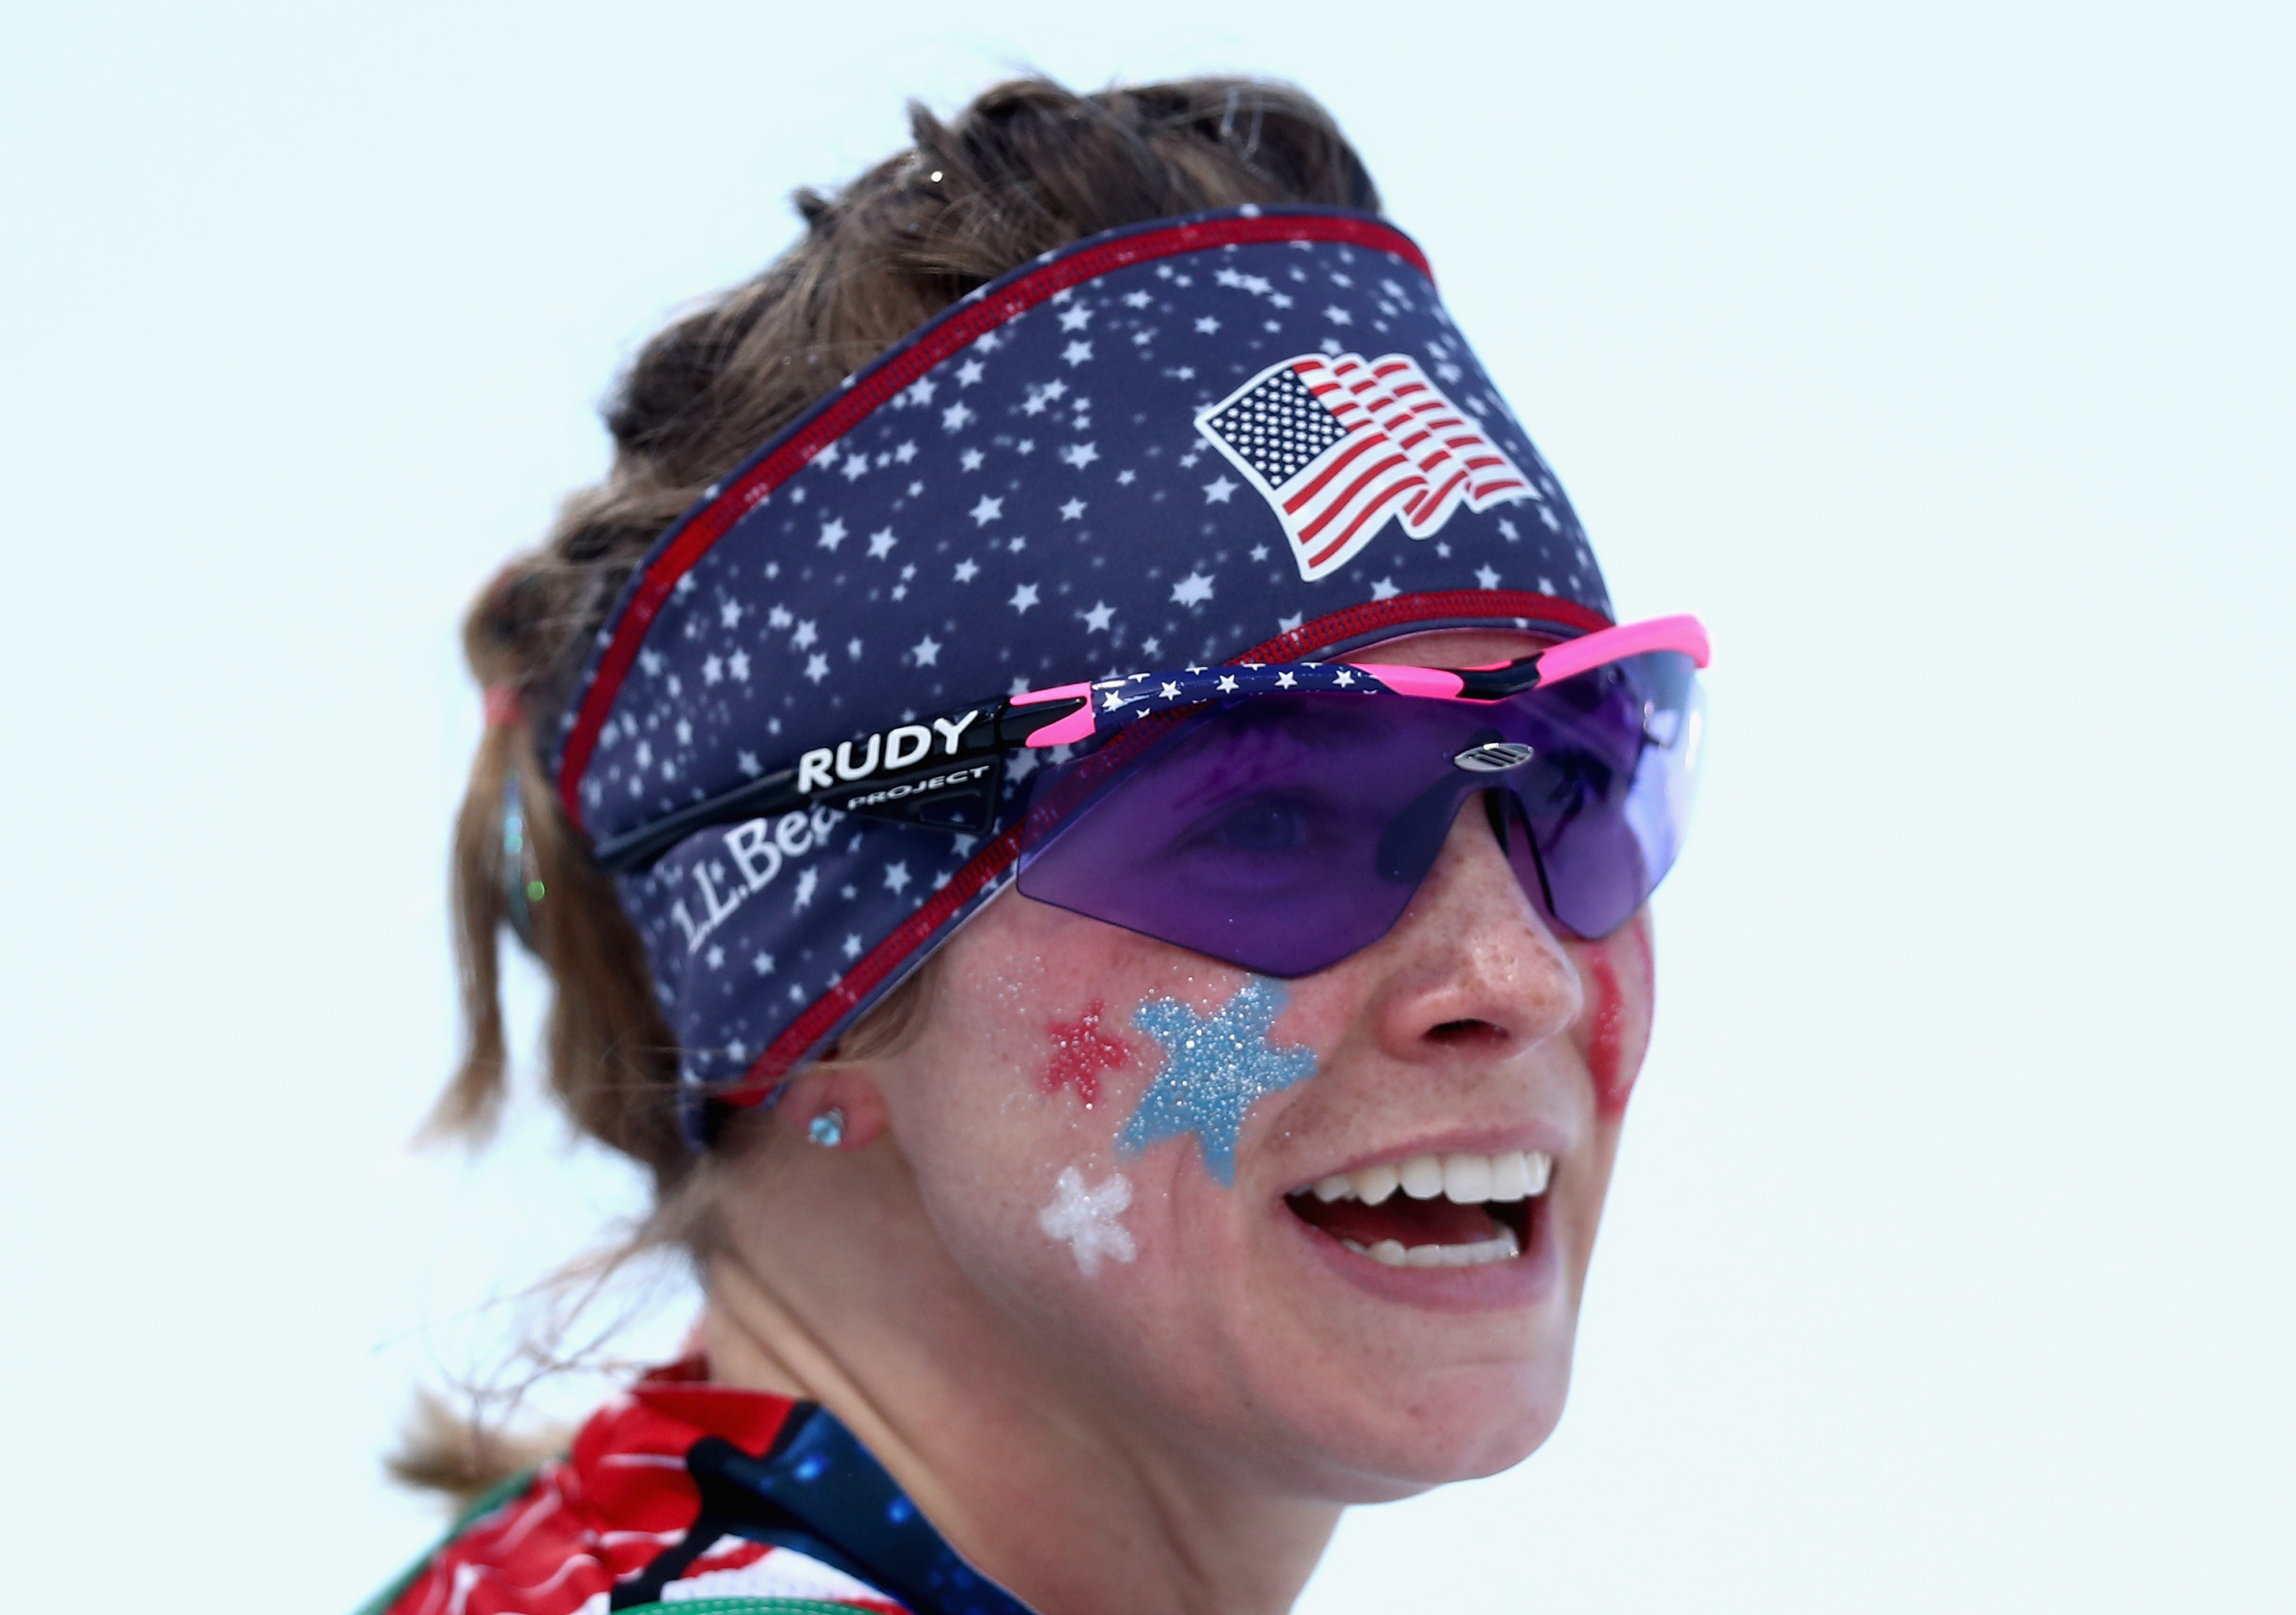 Minnesota's Diggins to carry USA flag at Olympic closing ceremony